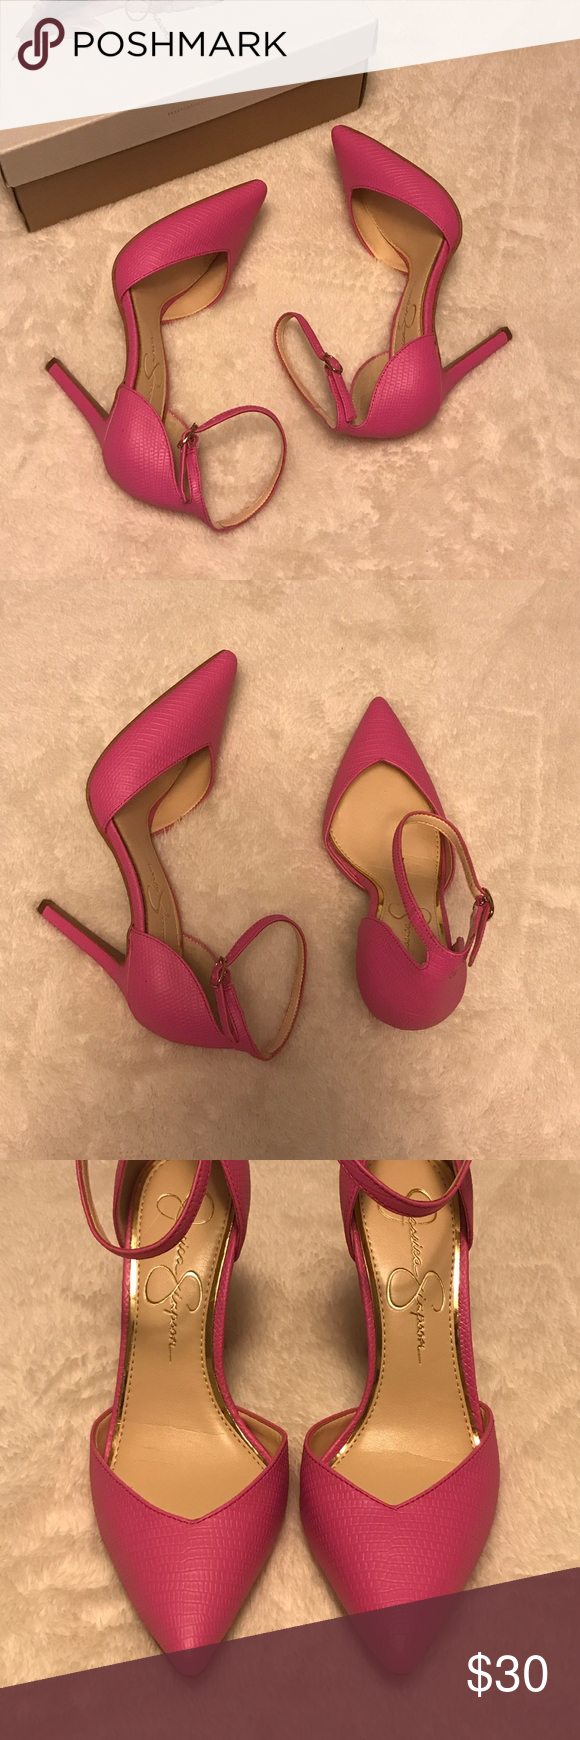 13883c20cd93 Jessica Simpson Ultra Pink Cirrus Pumps Pointed-toe pumps with adjustable ankle  straps. Color